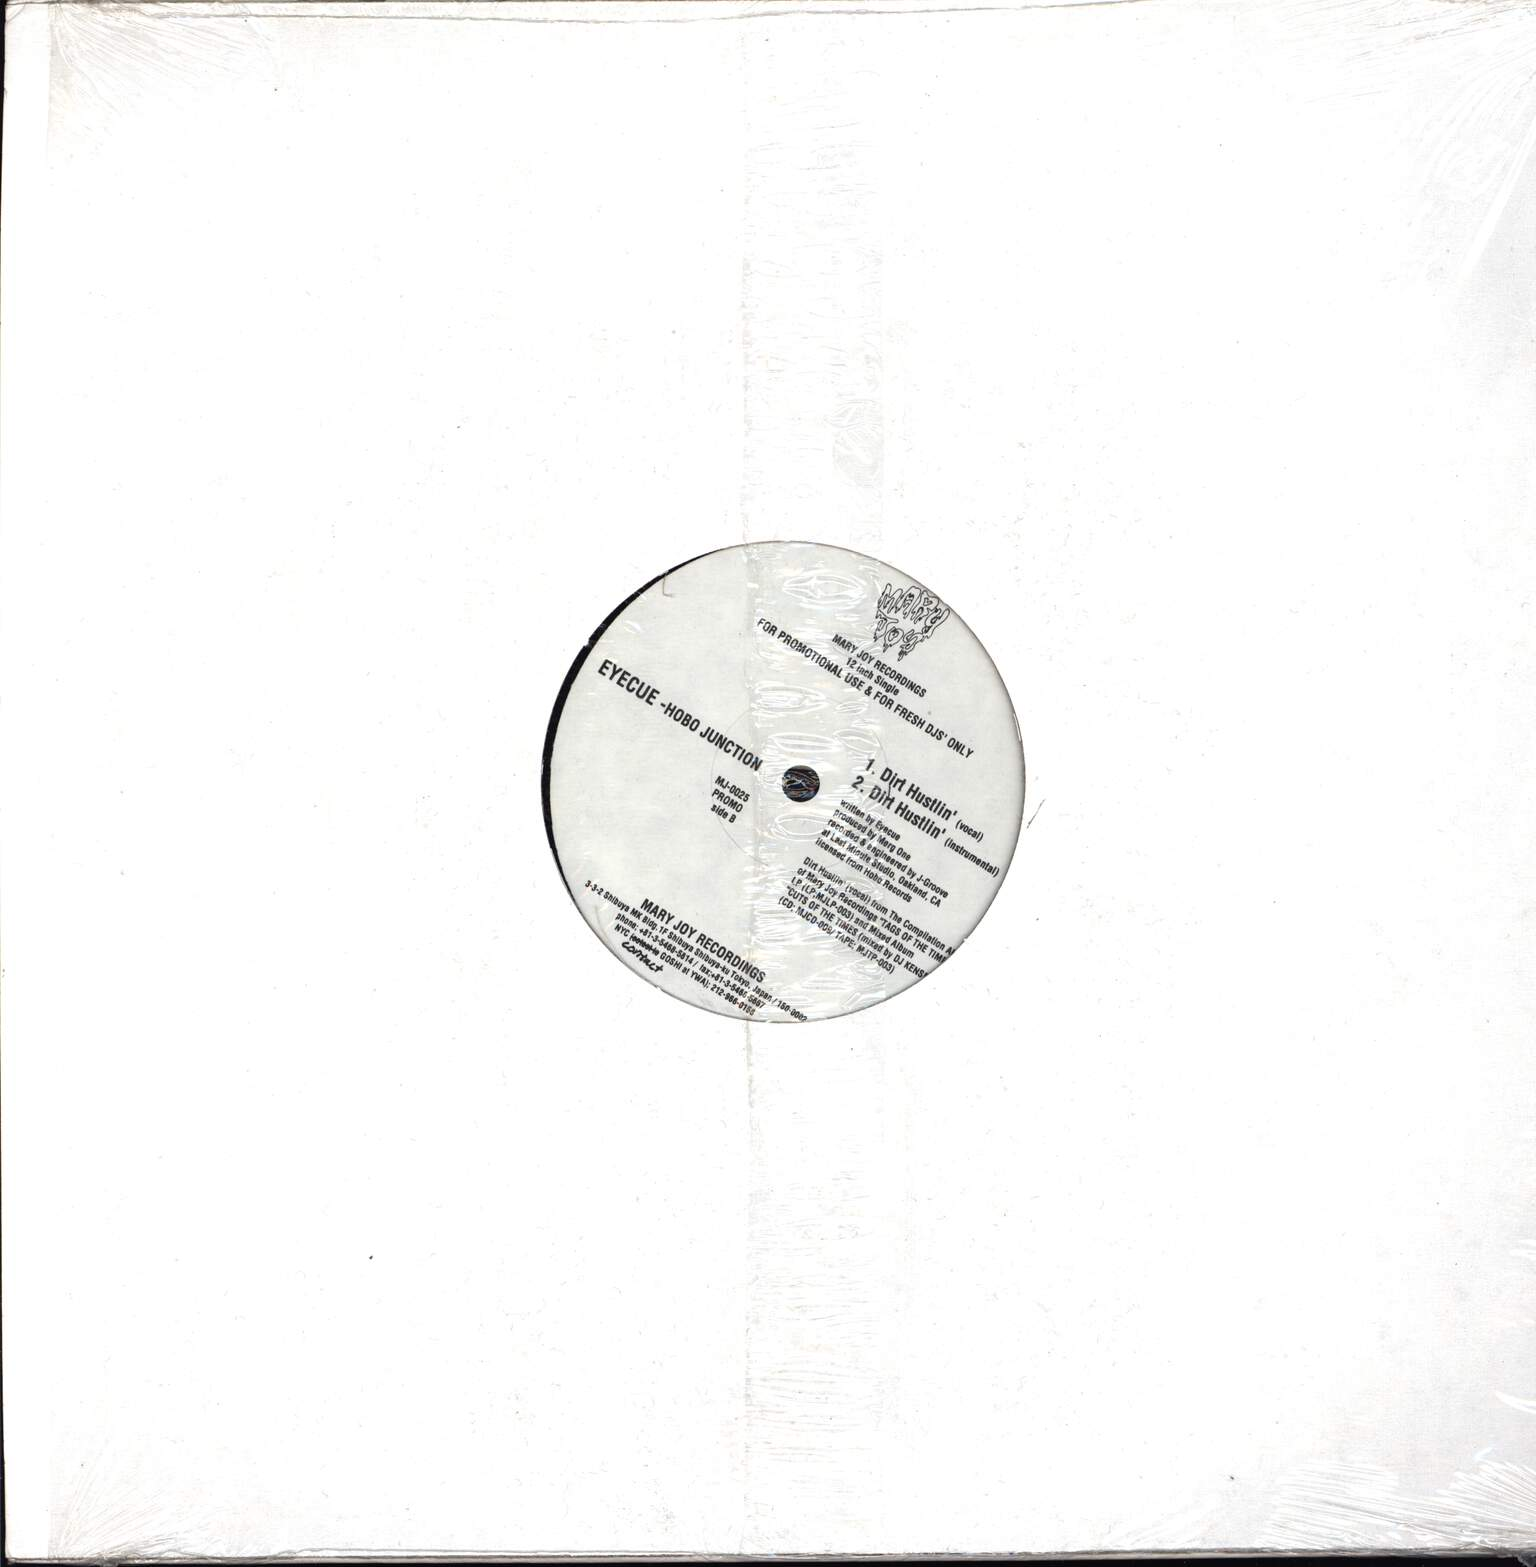 "Saafir: Scand'lous / Dirt Hustlin', 12"" Maxi Single (Vinyl)"